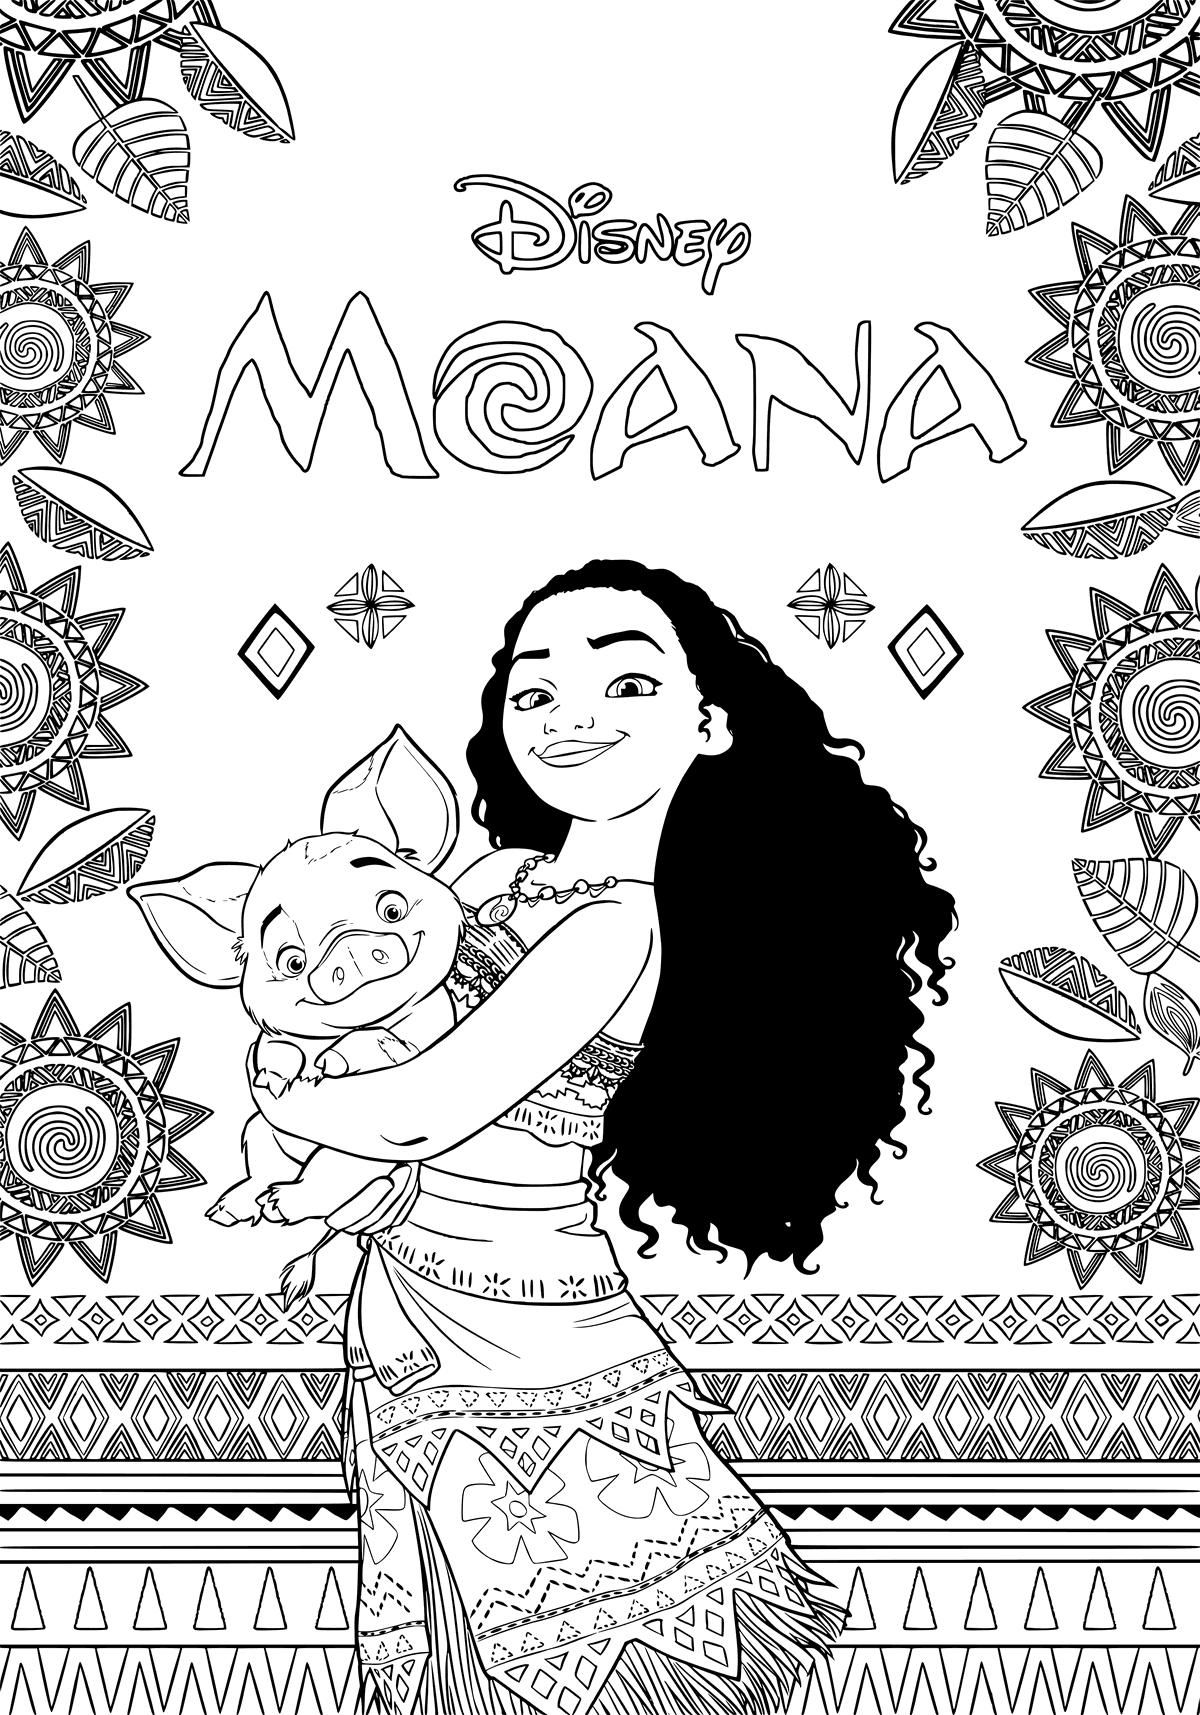 18 Coloring Page Moana Moana Coloring Pages Moana Coloring Disney Princess Coloring Pages